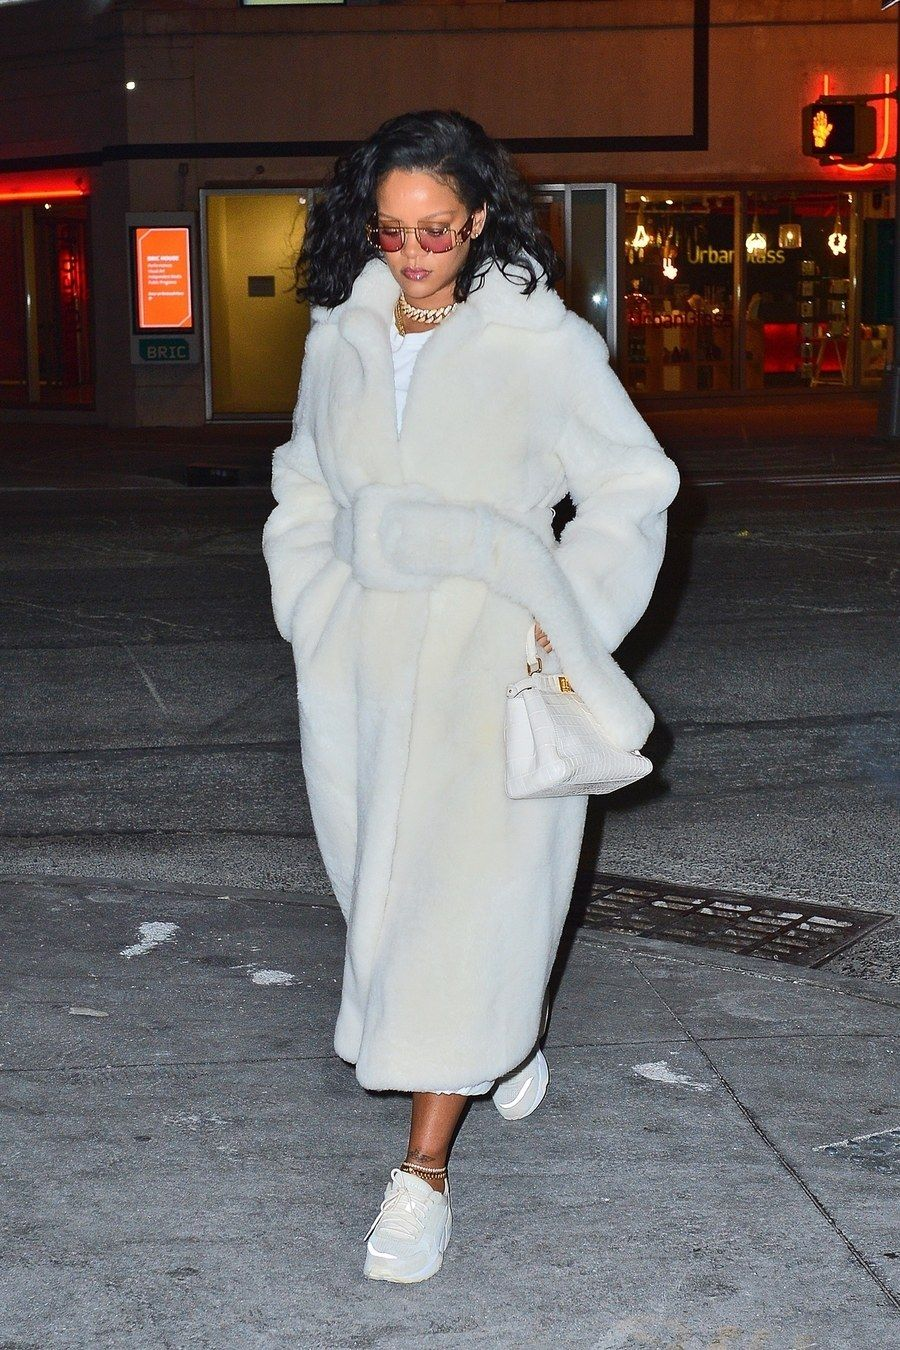 Rihanna Can't Get Enough of Old Celine The superst